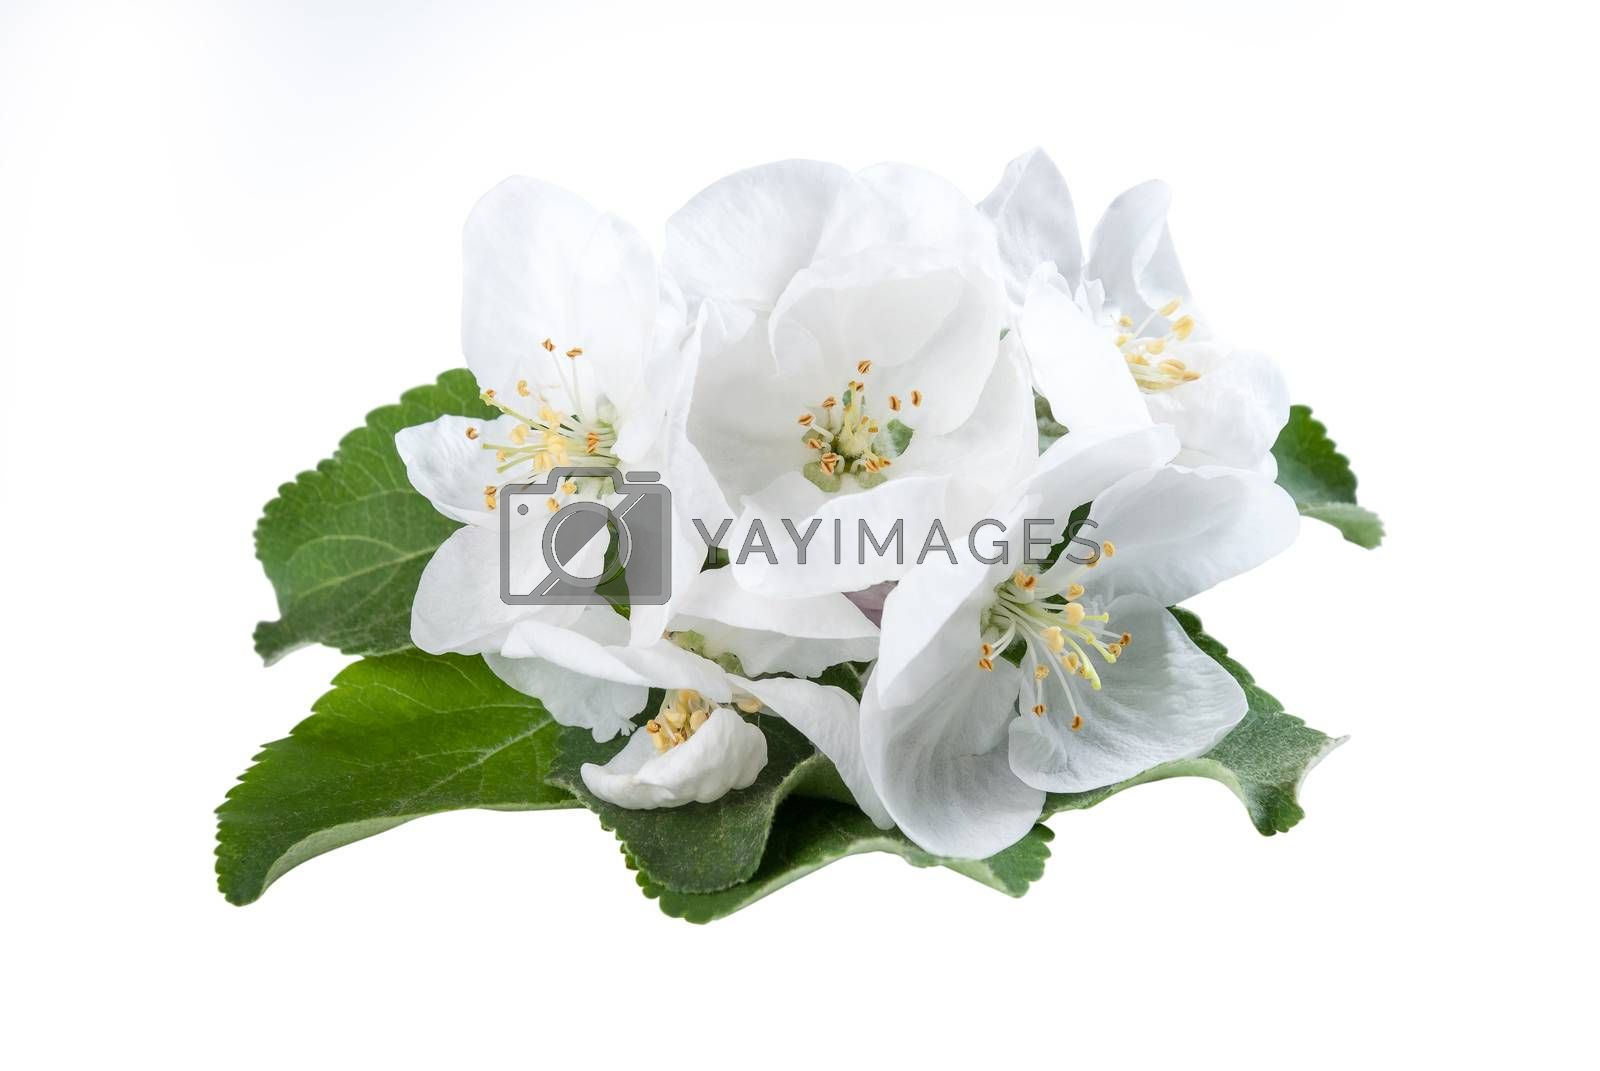 Apples flower with green leaves isolated on a white background